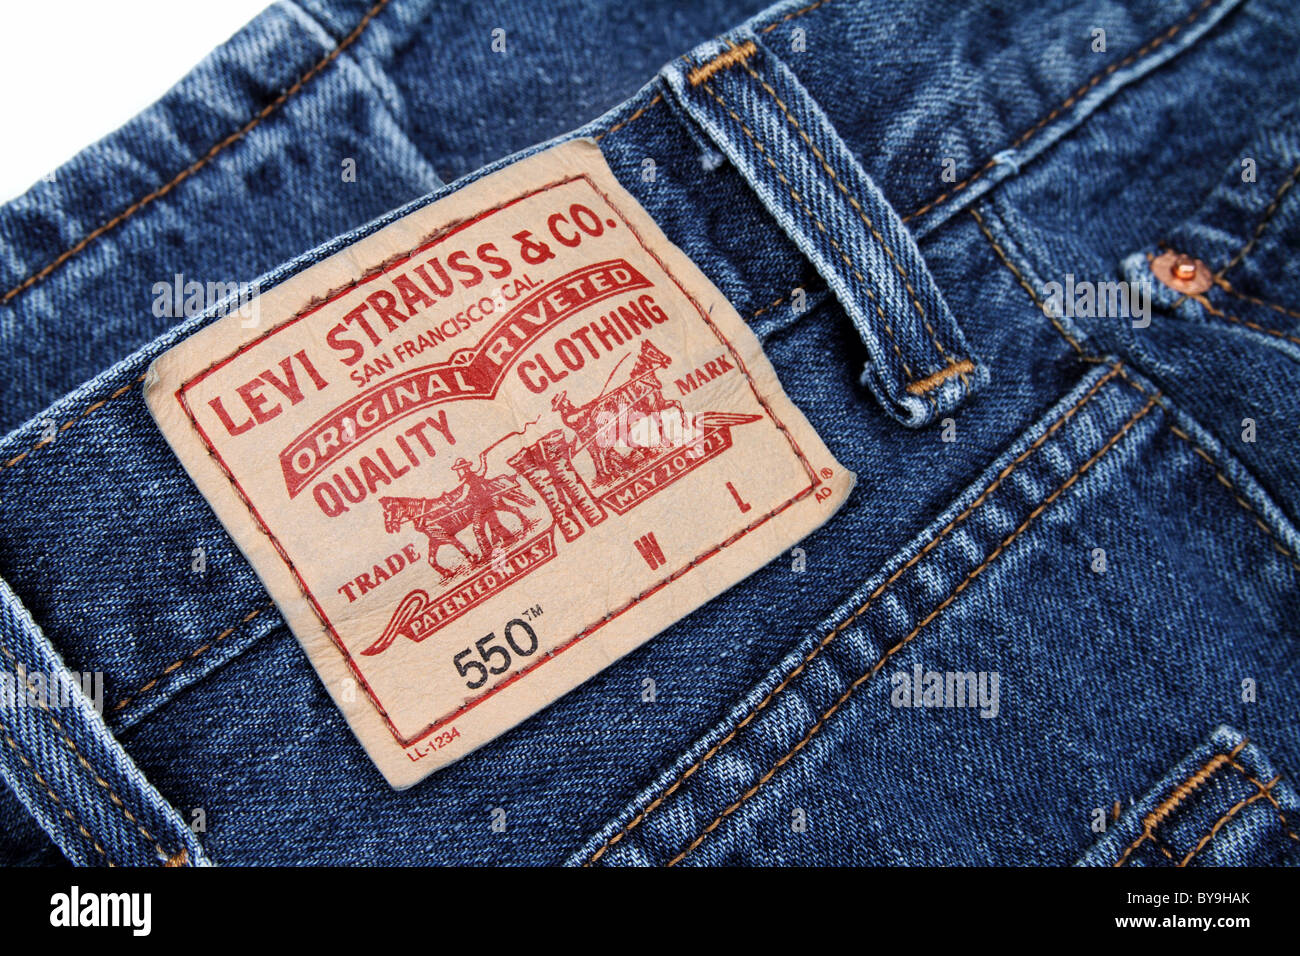 02aa53d1fb53be Levi s Jeans Label Stock Photos   Levi s Jeans Label Stock Images ...